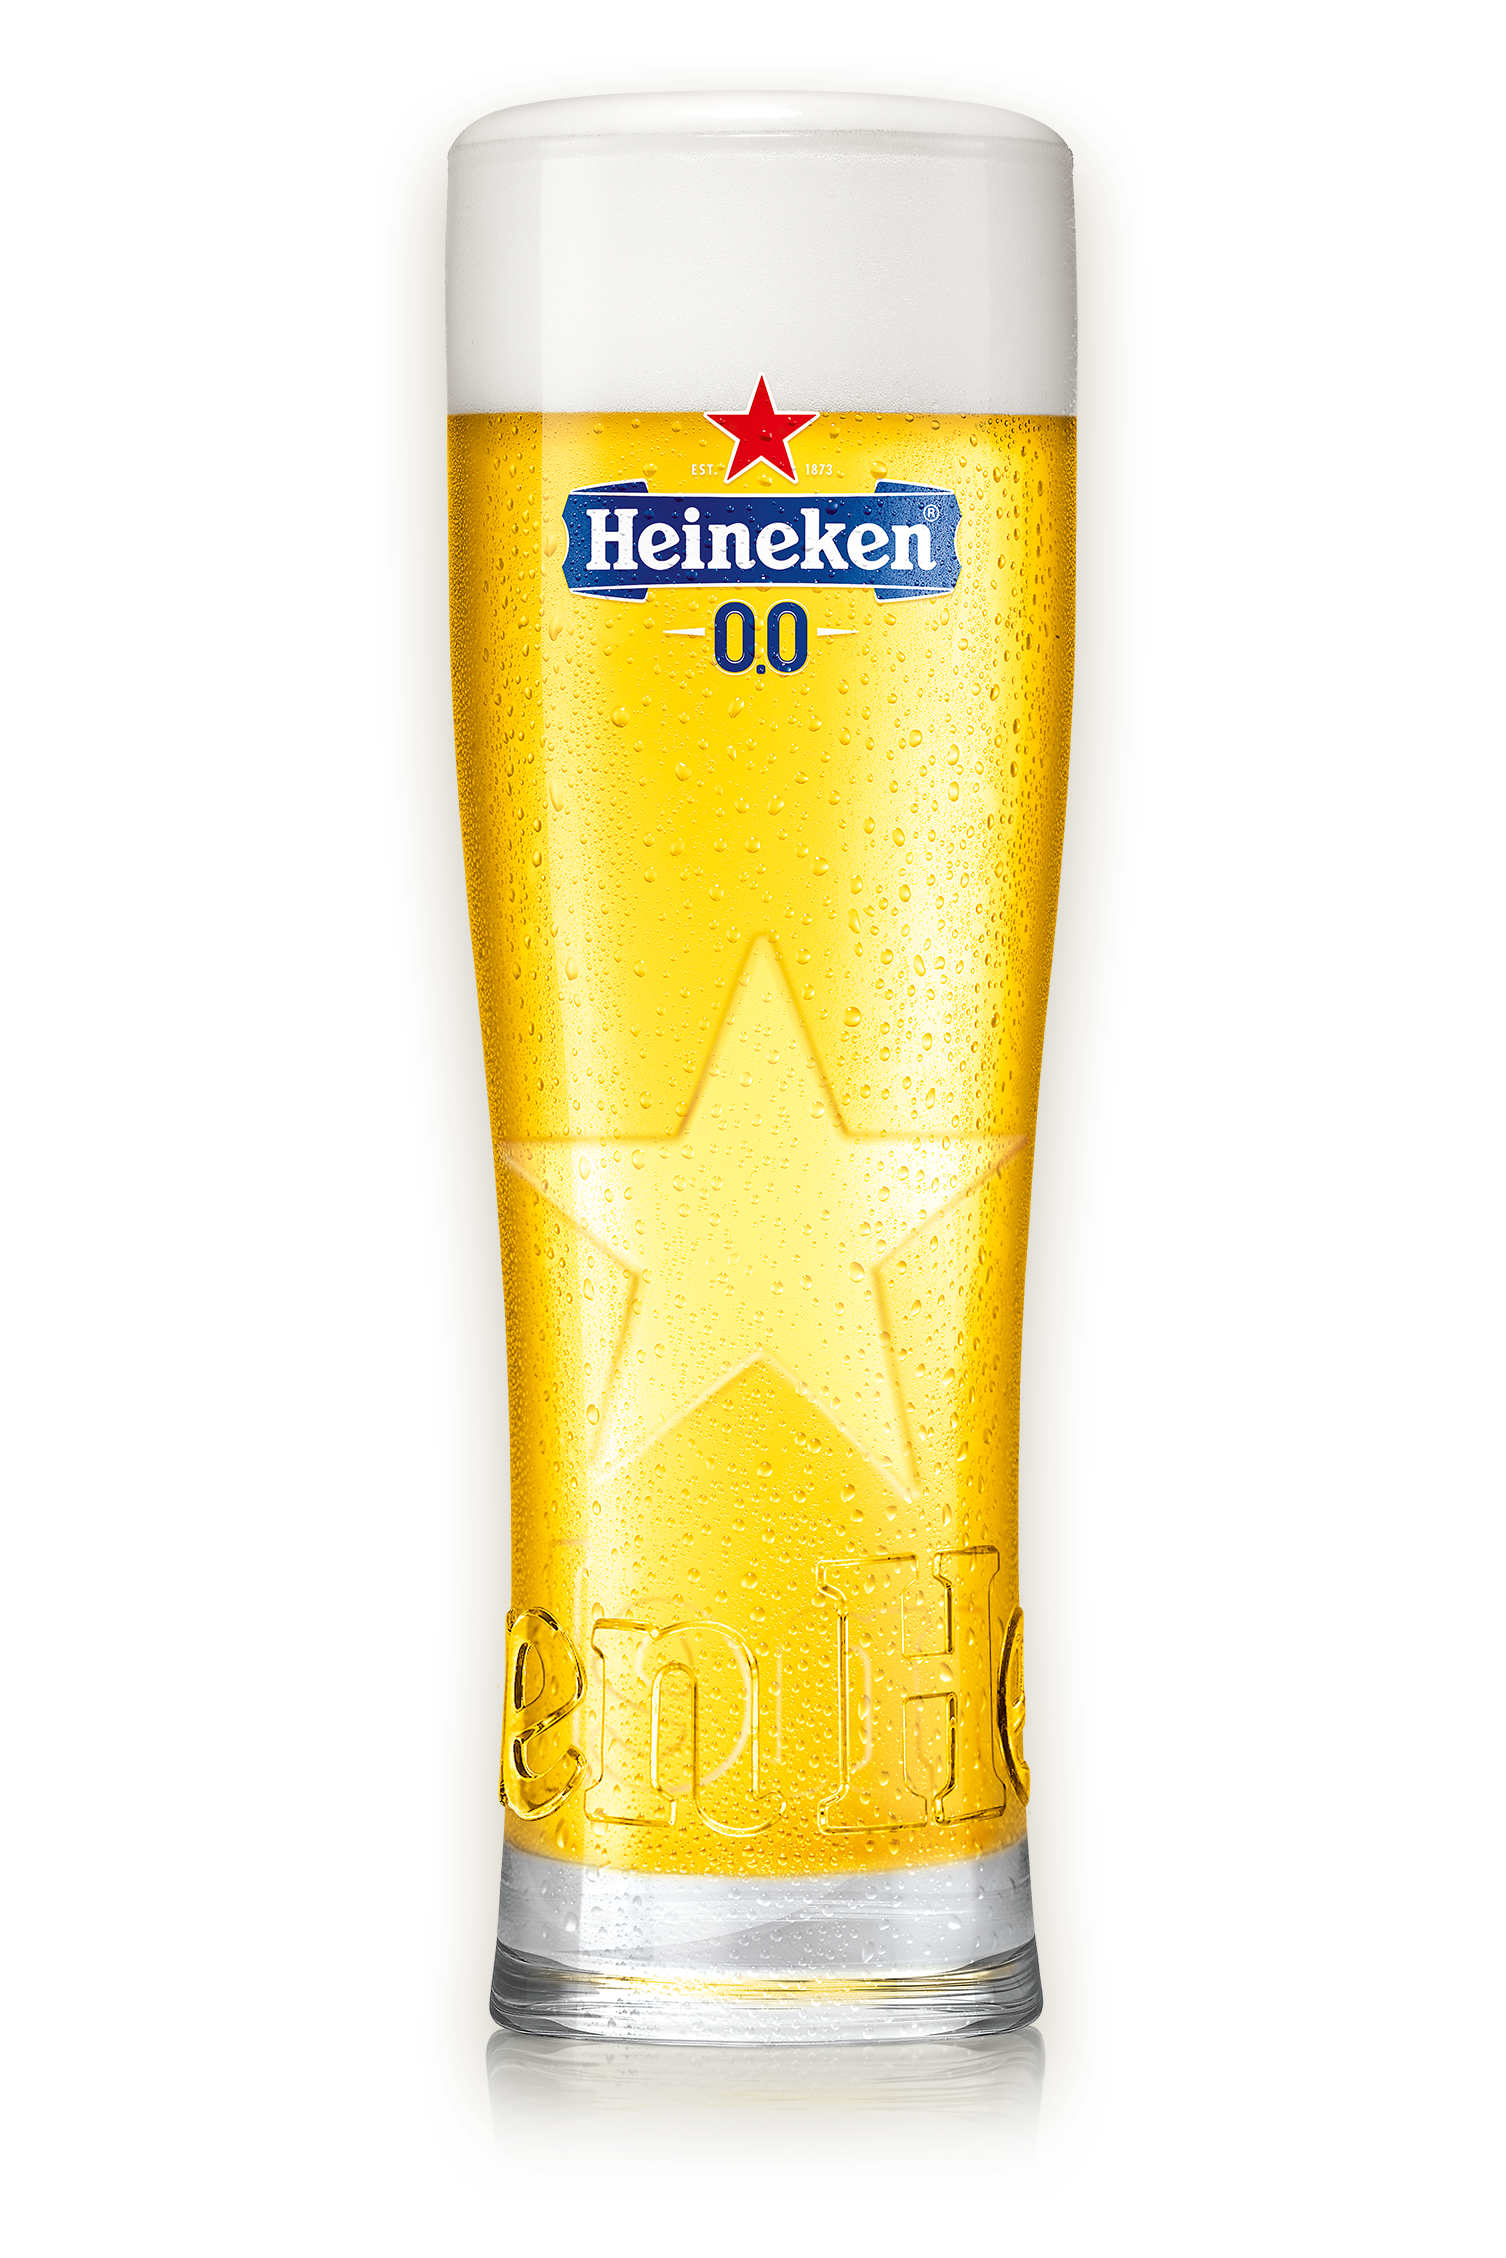 Heineken 00 Glass (1)